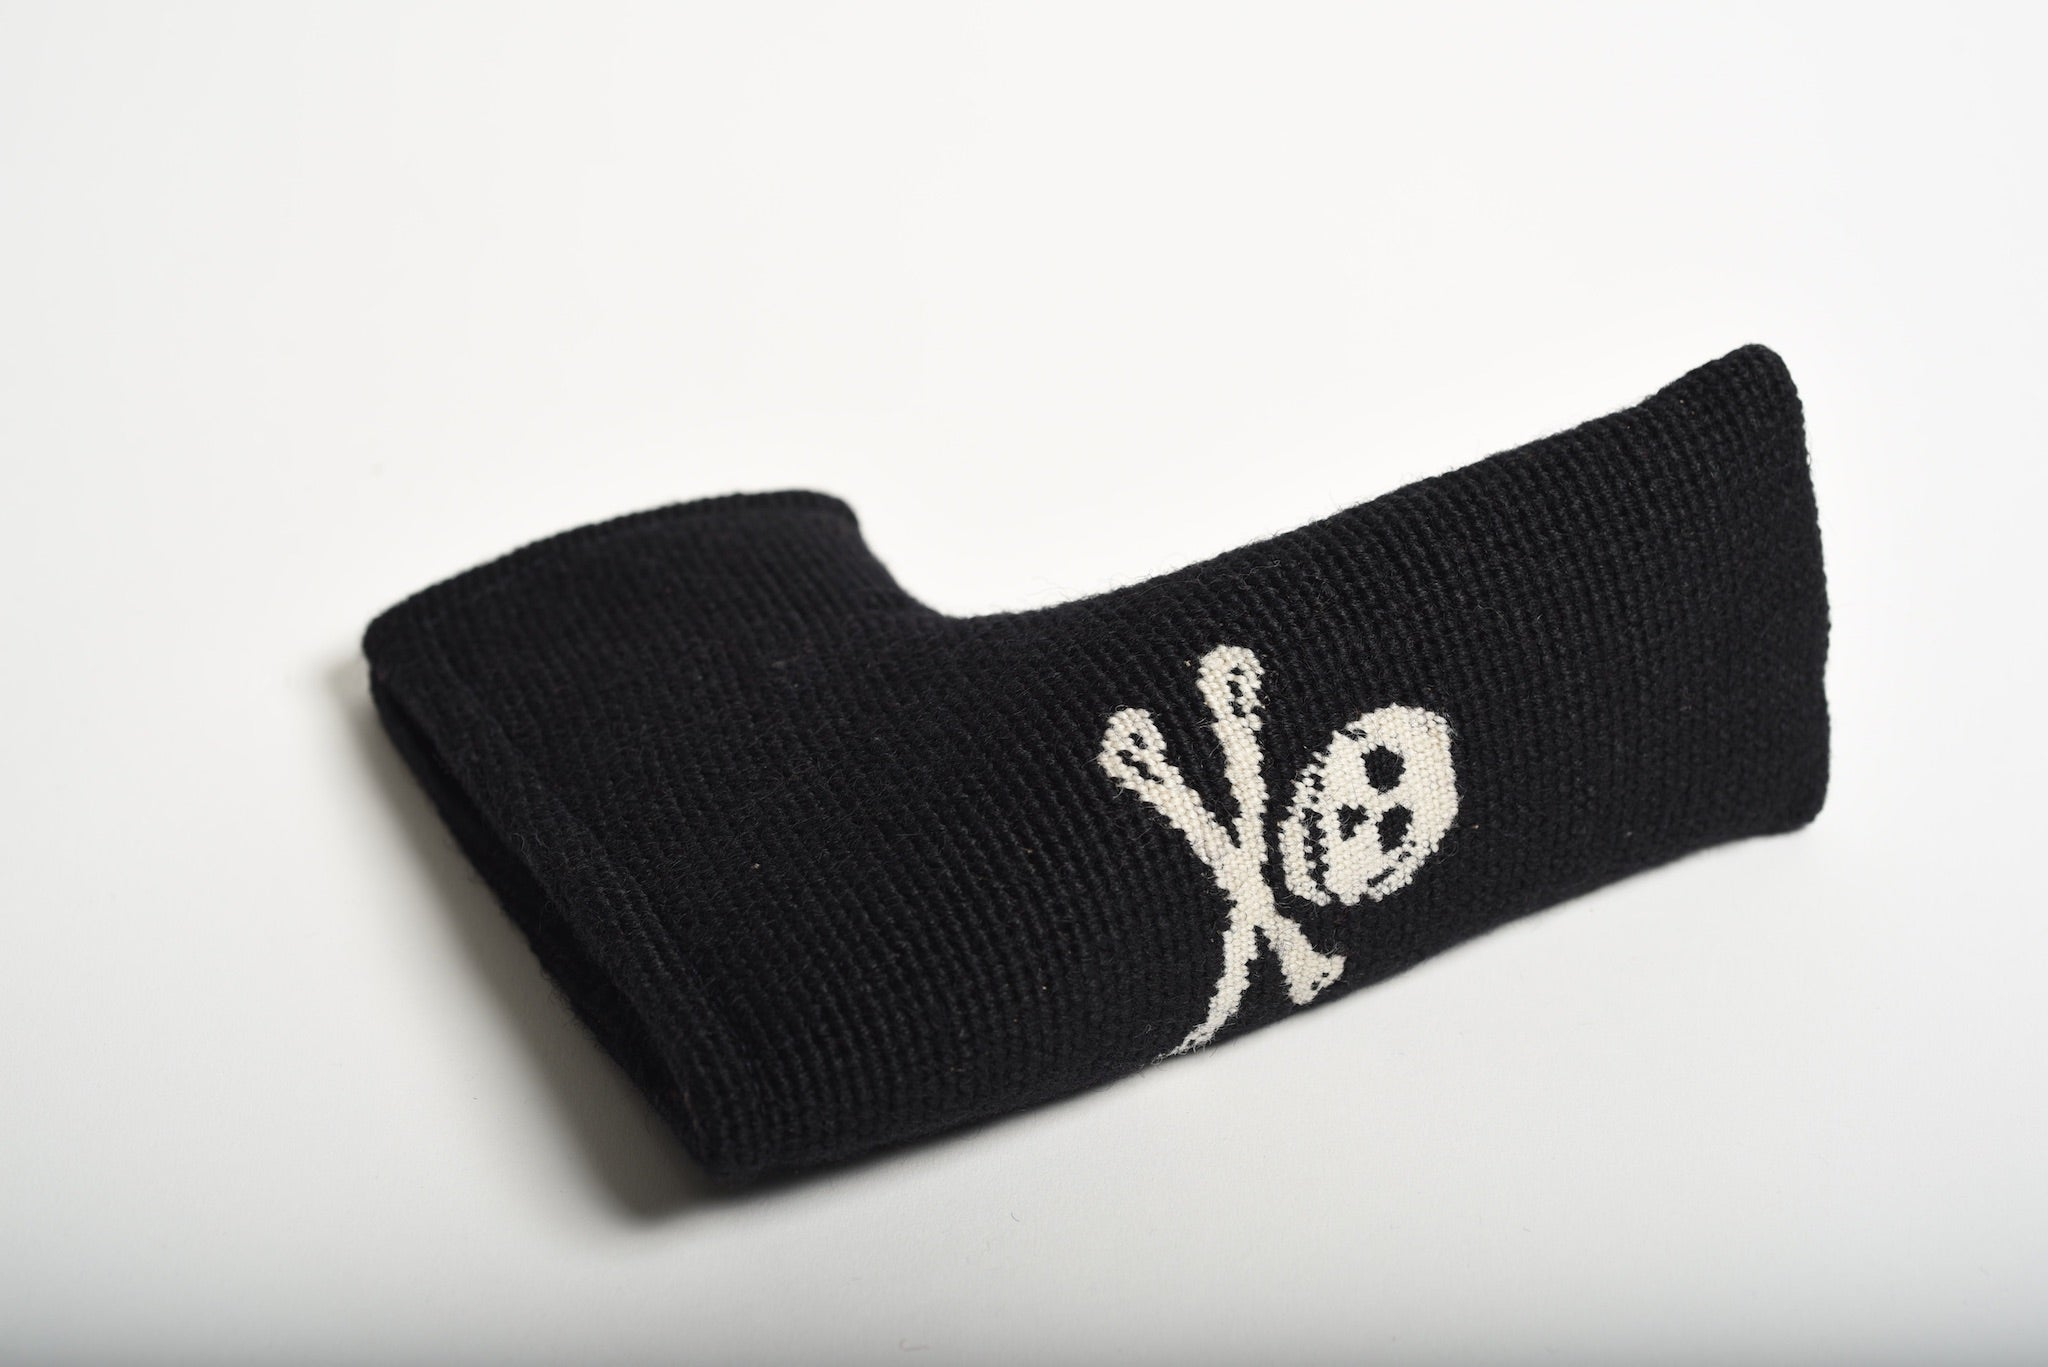 Jolly Roger Black Needlepoint Blade Putter Headcover